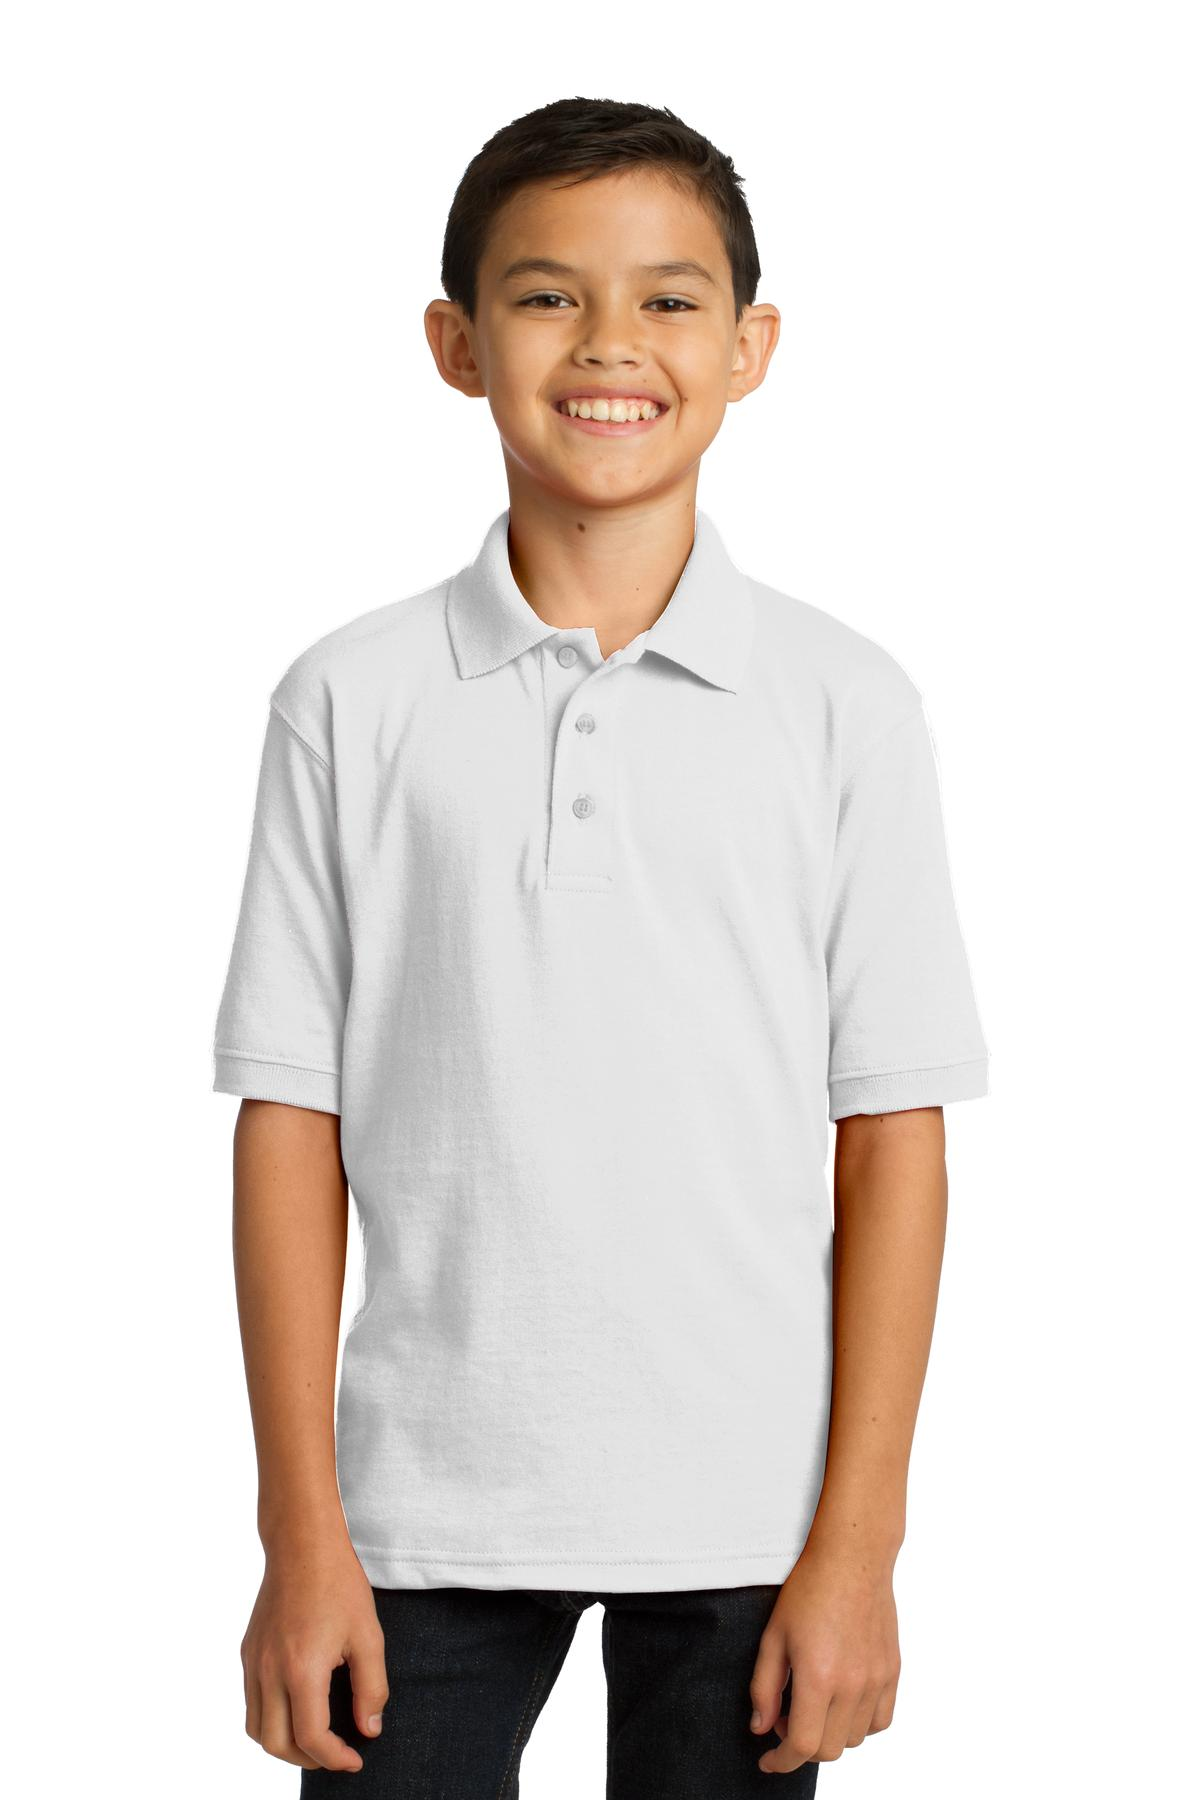 Port /& Company Boys Youth Jersey 3 Button Knit Polo Shirt XS-4XL KP55Y